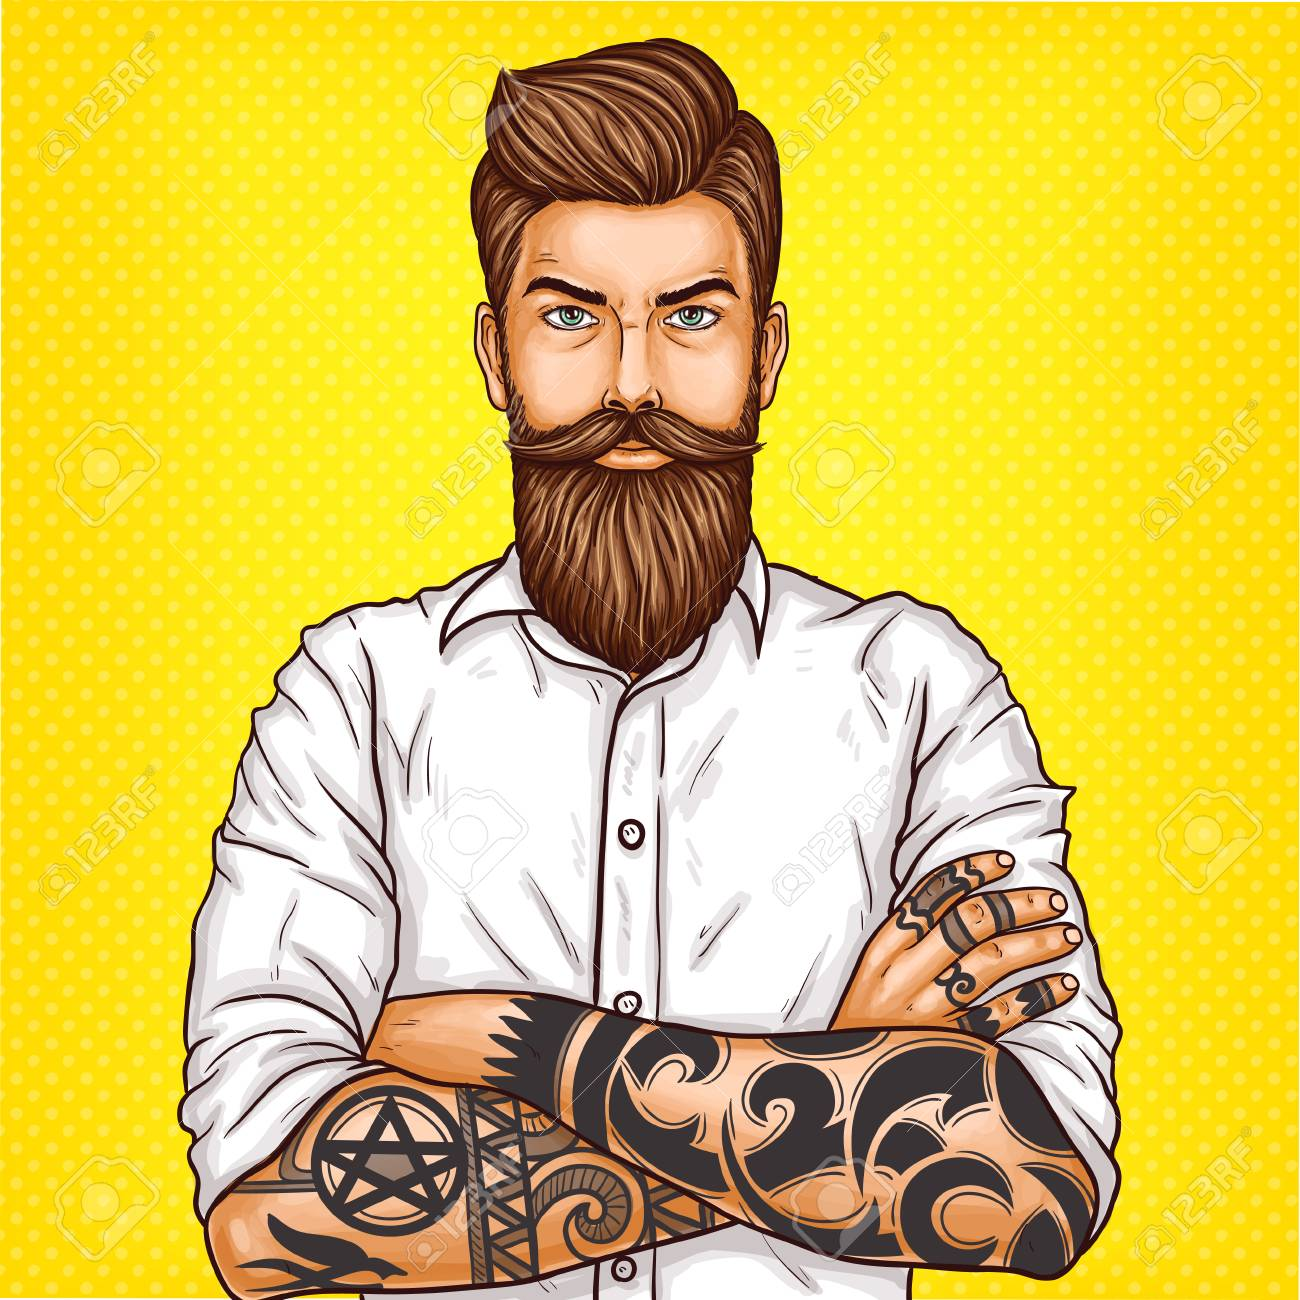 pop art illustration of a brutal bearded man, macho with tatoo folded his arms over his chest - 89842422